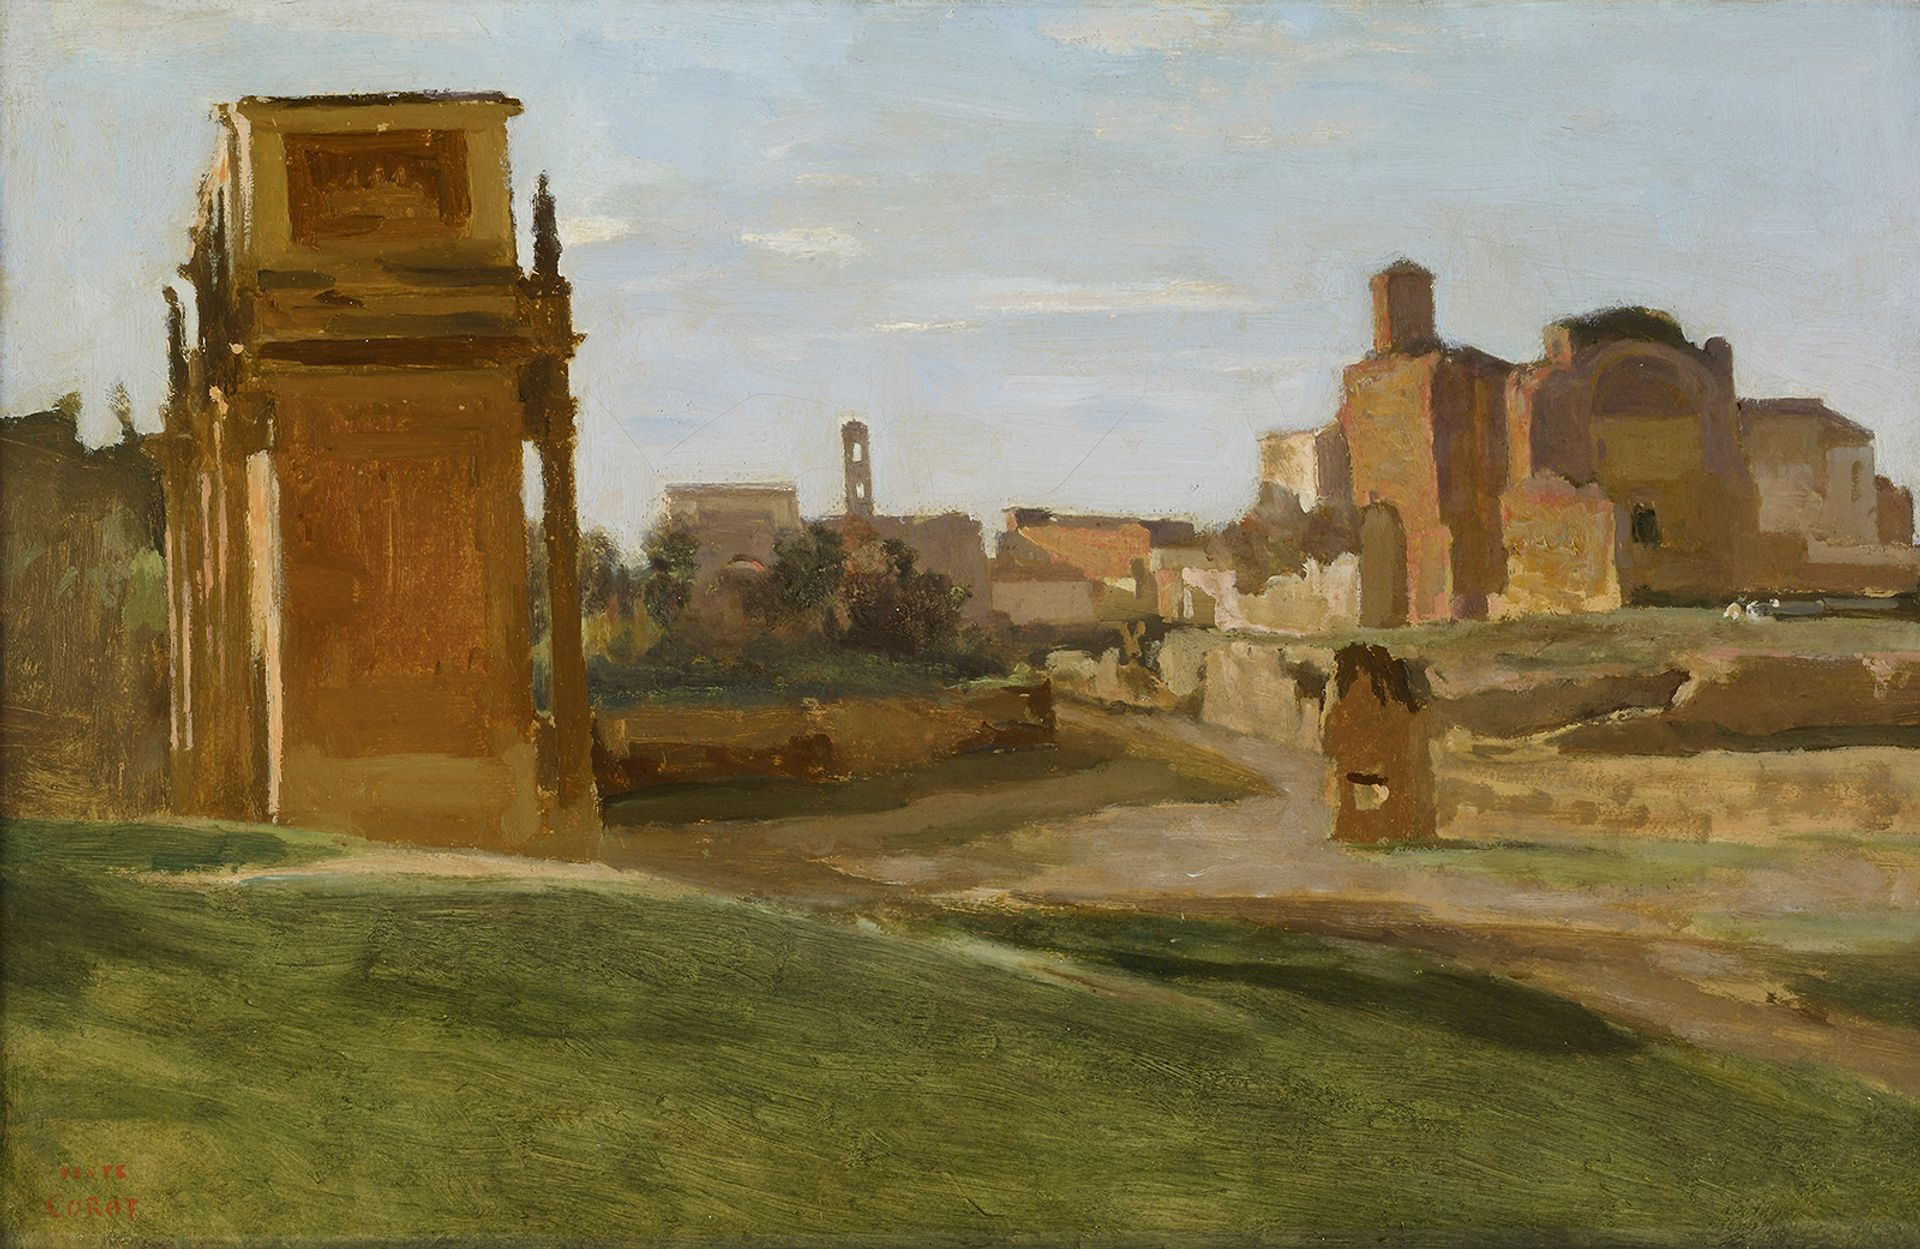 Jean-Baptiste-Camille Corot's The Arch of Constantine and the Forum, Rome (1843) is among the works heading to Puerto Rico Photo: Michael Bodycomb, courtesy the Frick Collection, New York